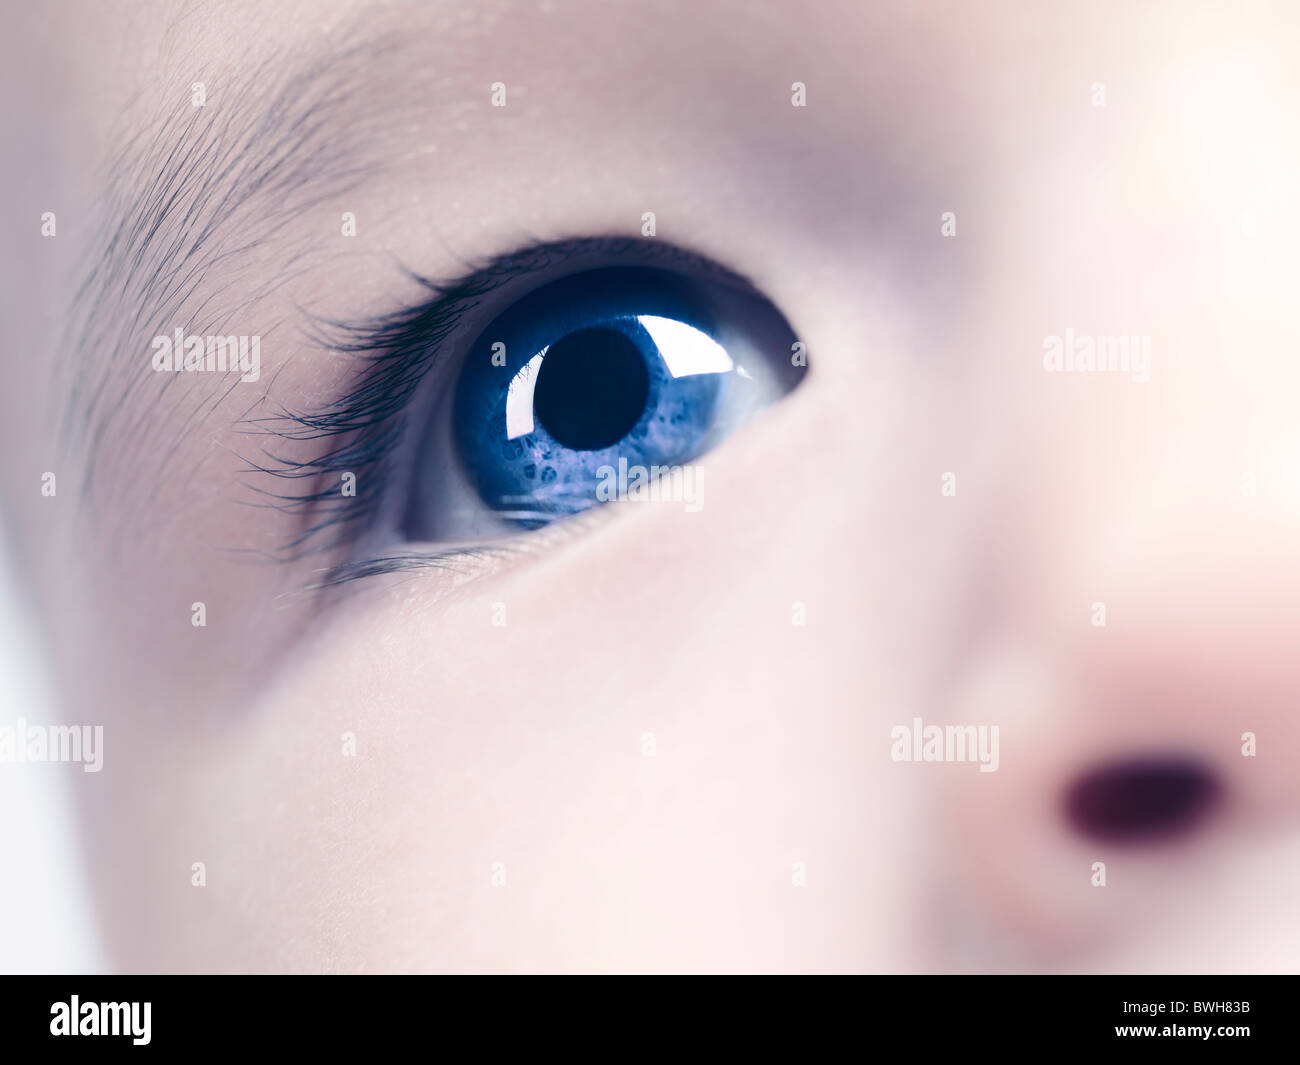 Closeup of a blue eye of a six month old baby boy. Digitally altered. - Stock Image